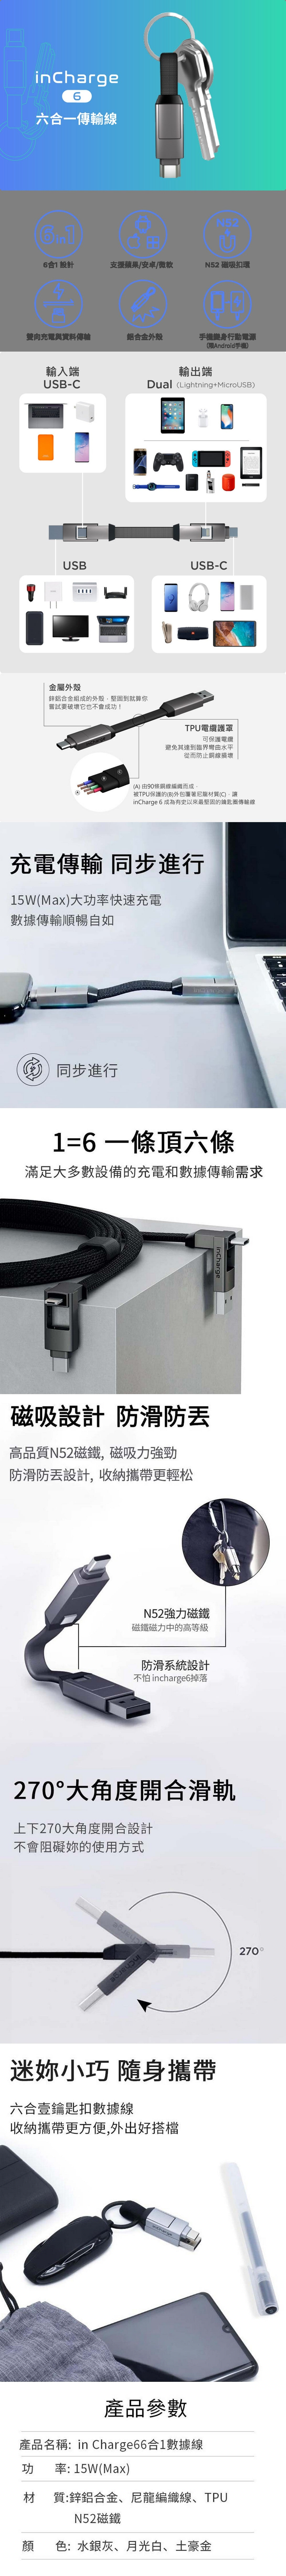 incharge-6-usb-cable